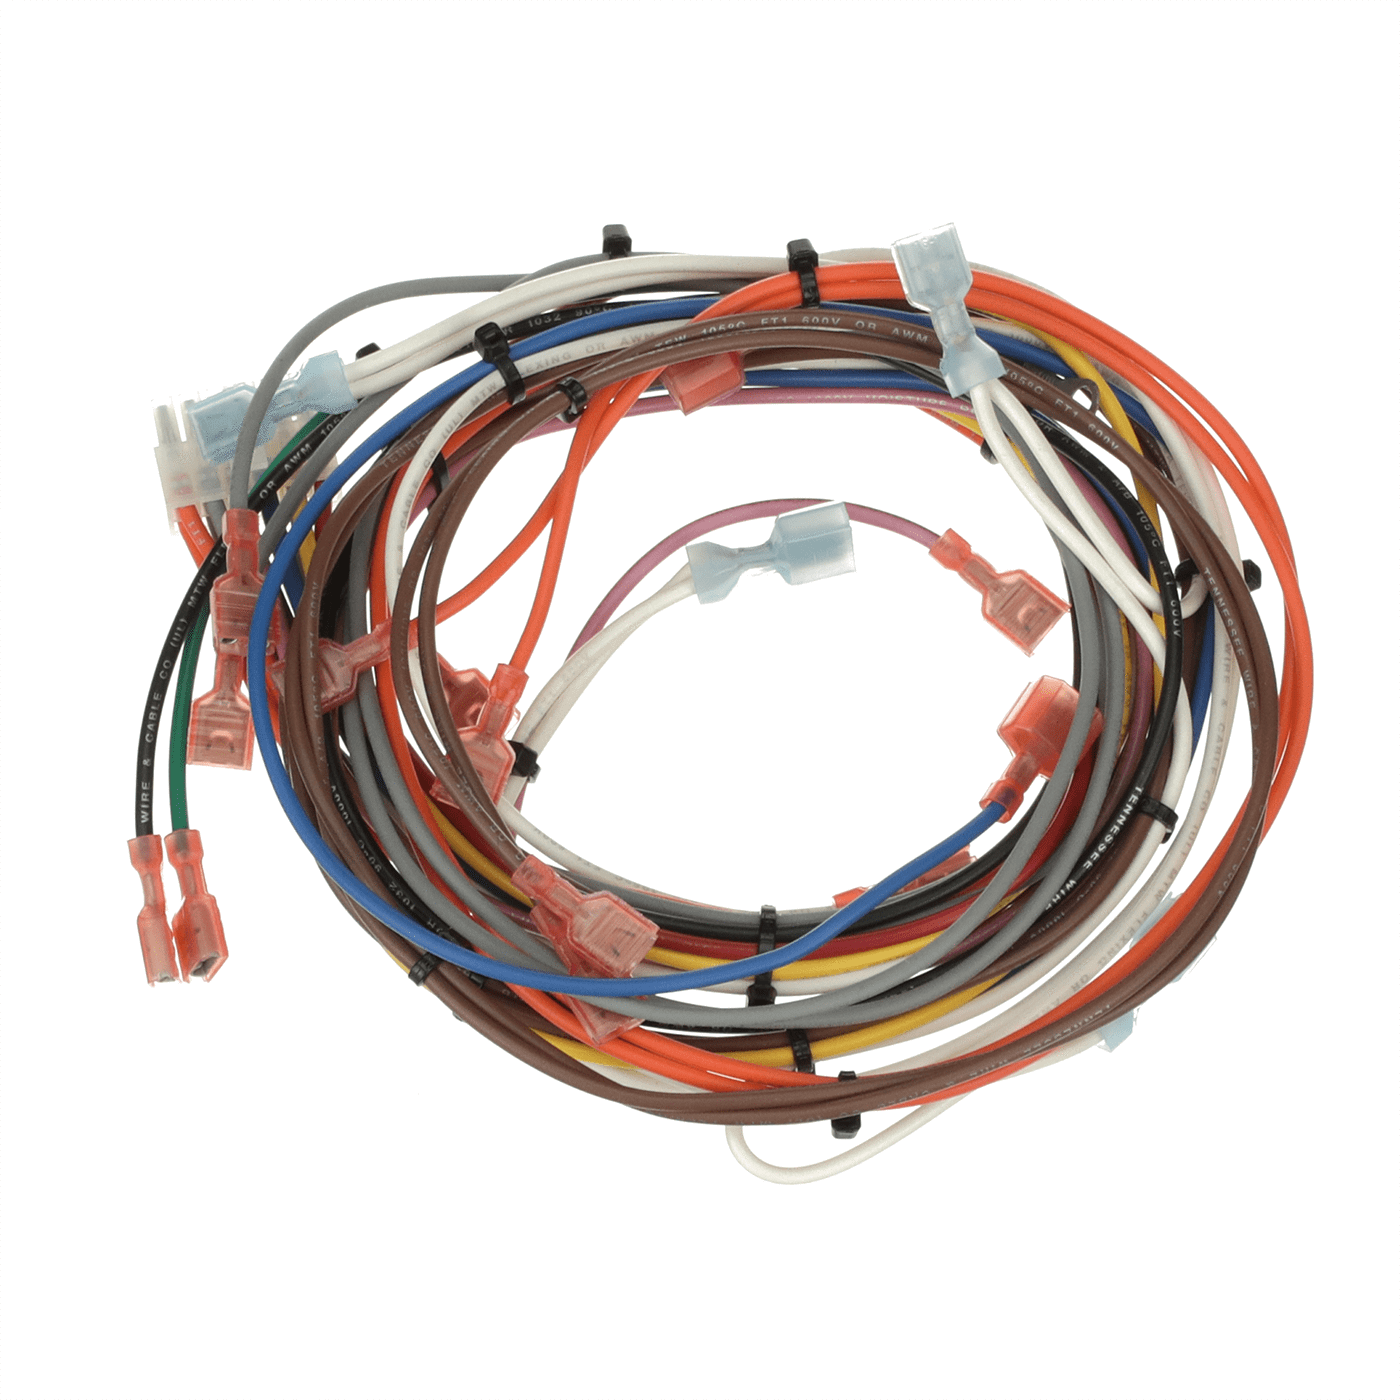 C E UH1000?v=1533143693 breckwell universal wire harness for digital boards, c e uh1000